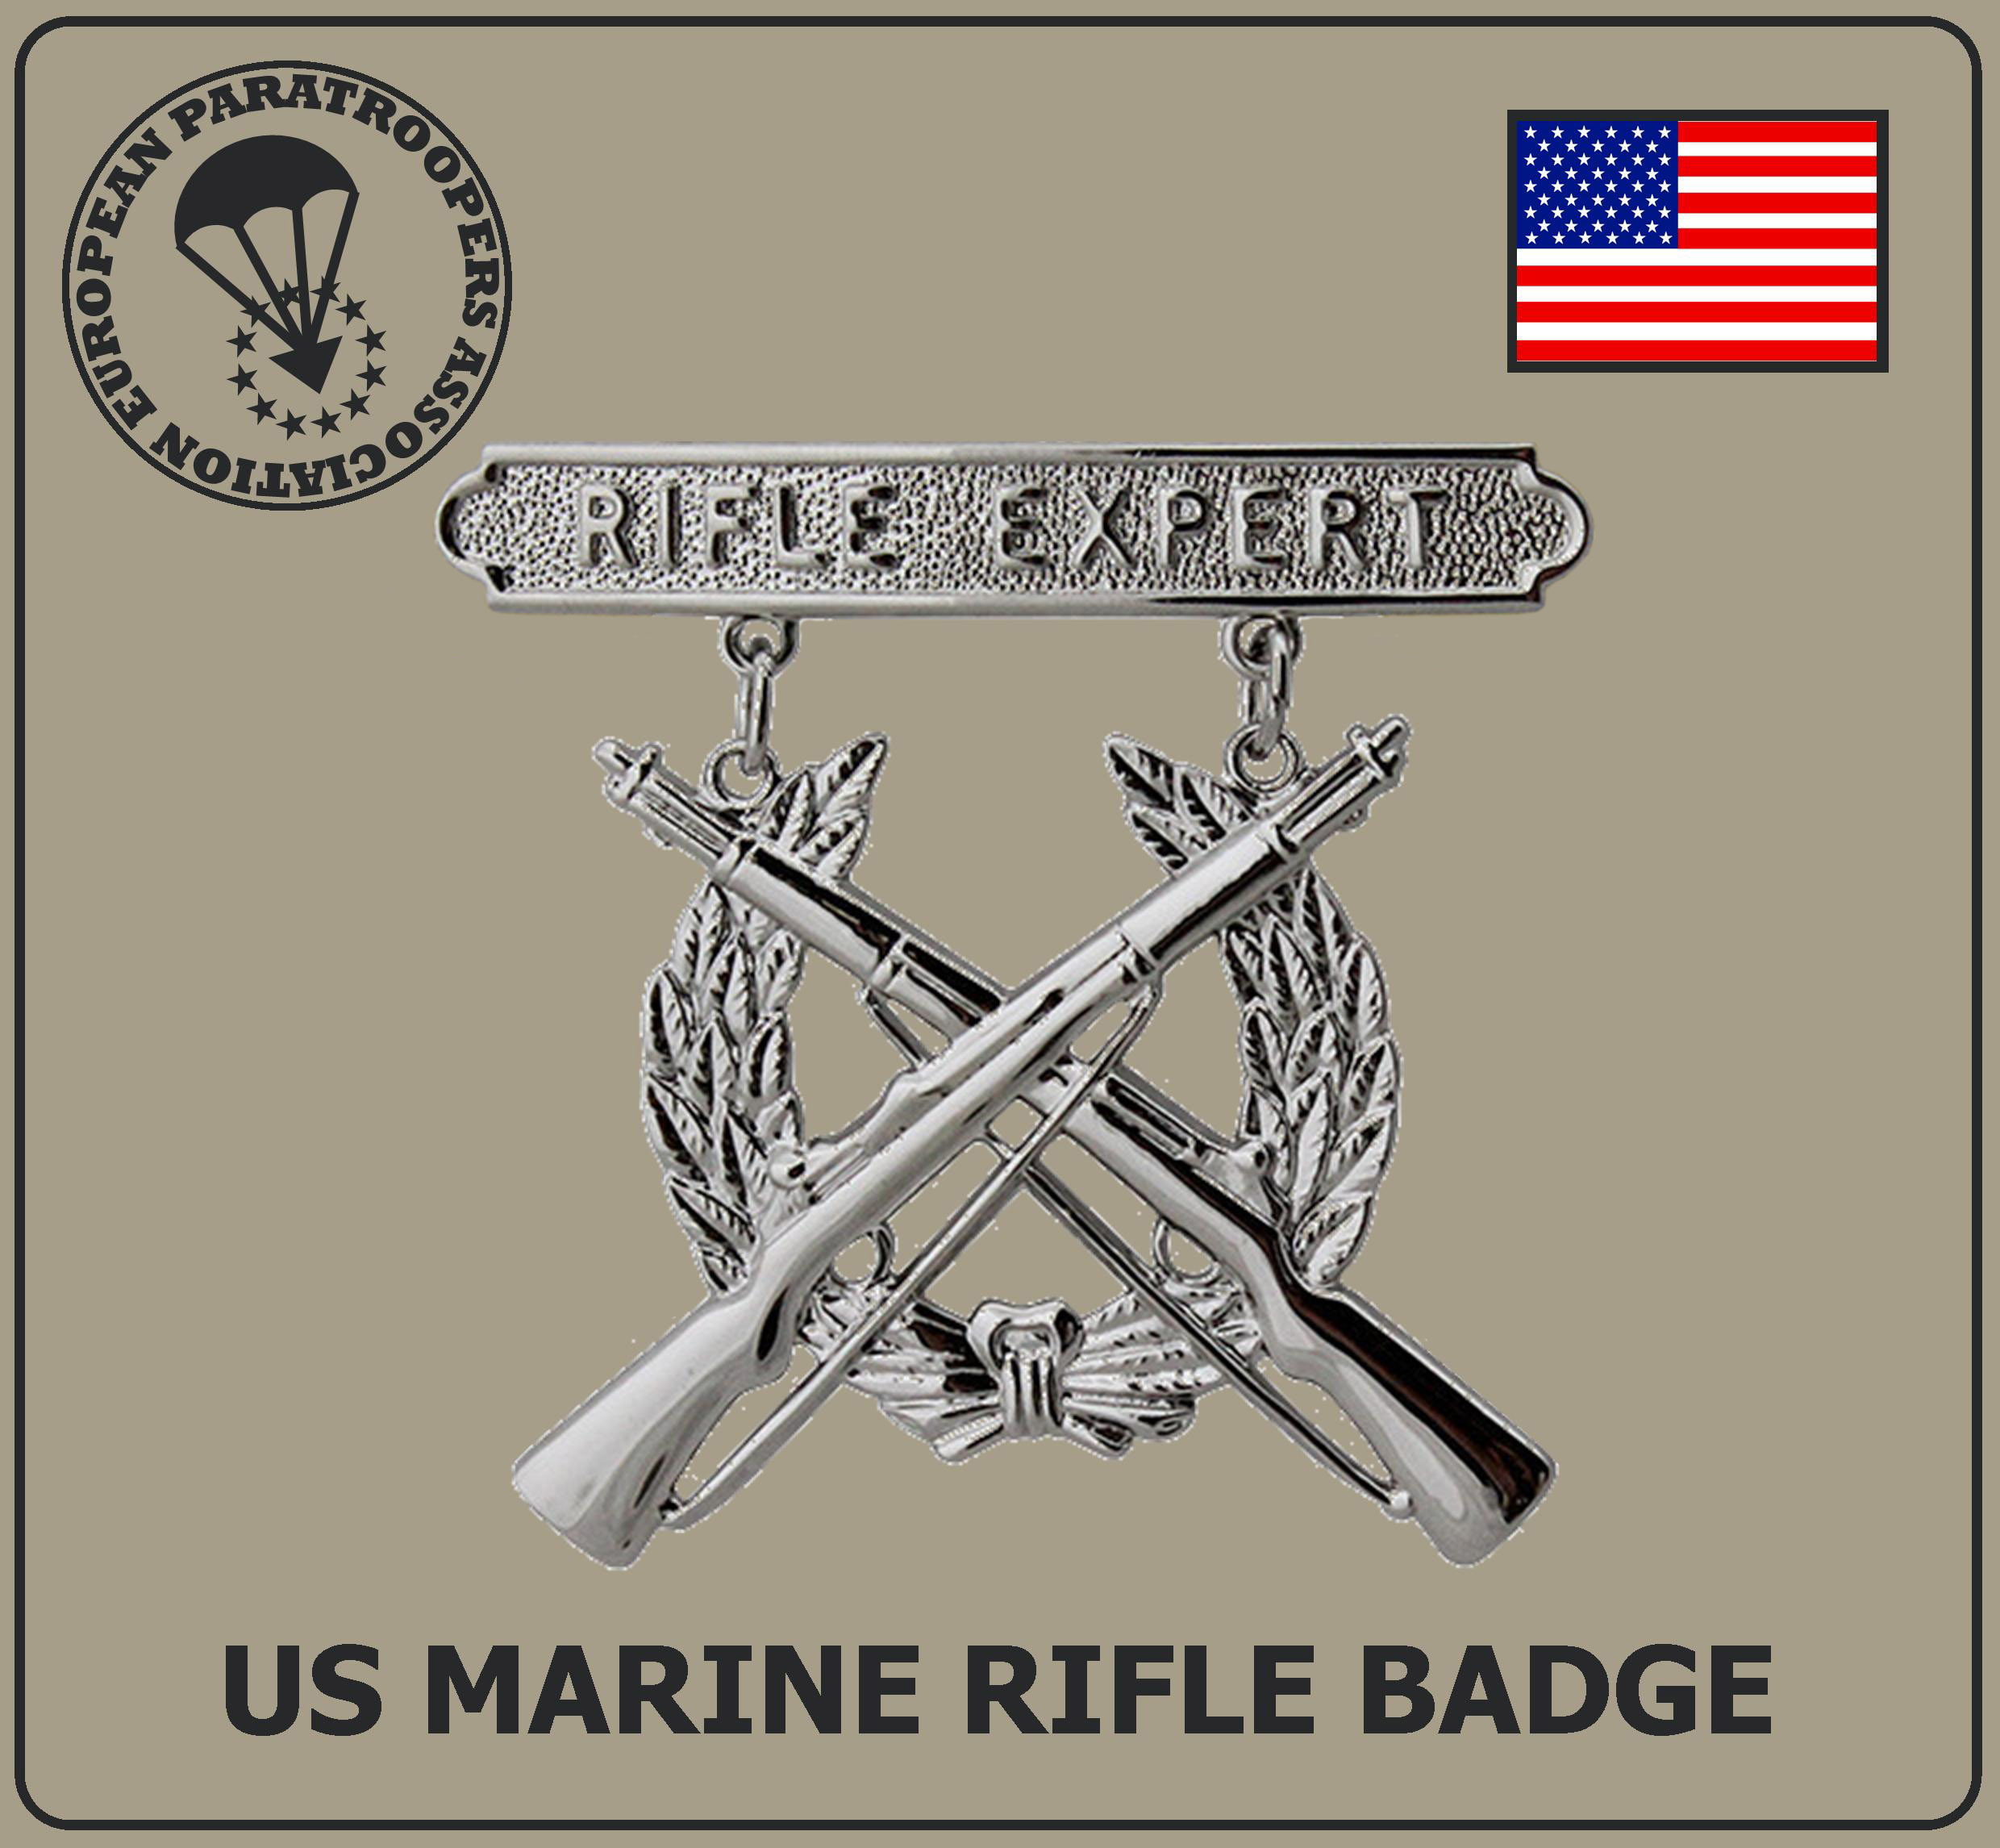 US MARINE RIFLE BADGE